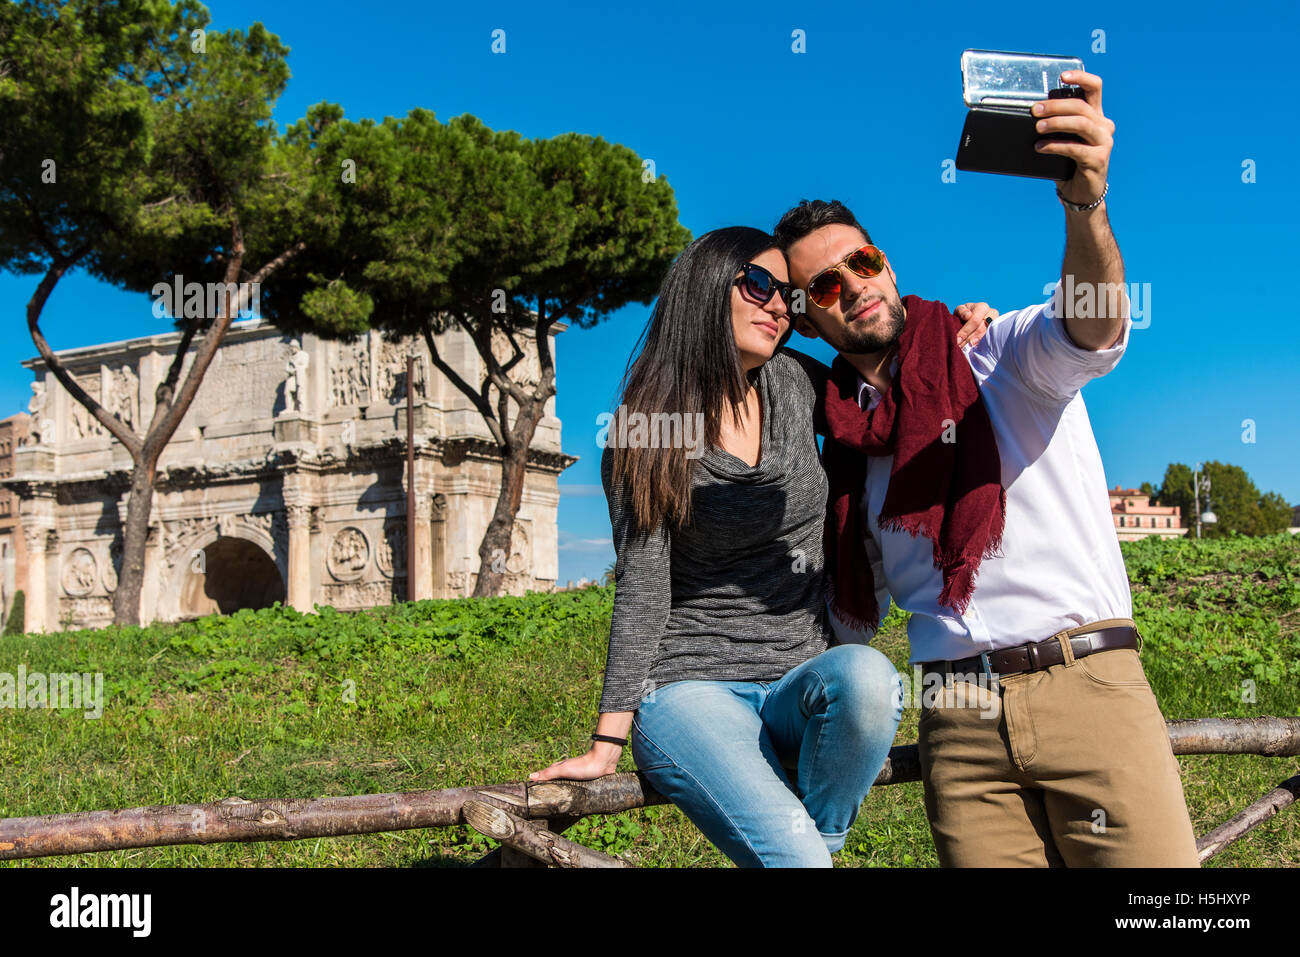 Young caucasian couple taking a selfie with a smartphone in front of the Arch of Constantine, Rome, Lazio, Italy - Stock Image